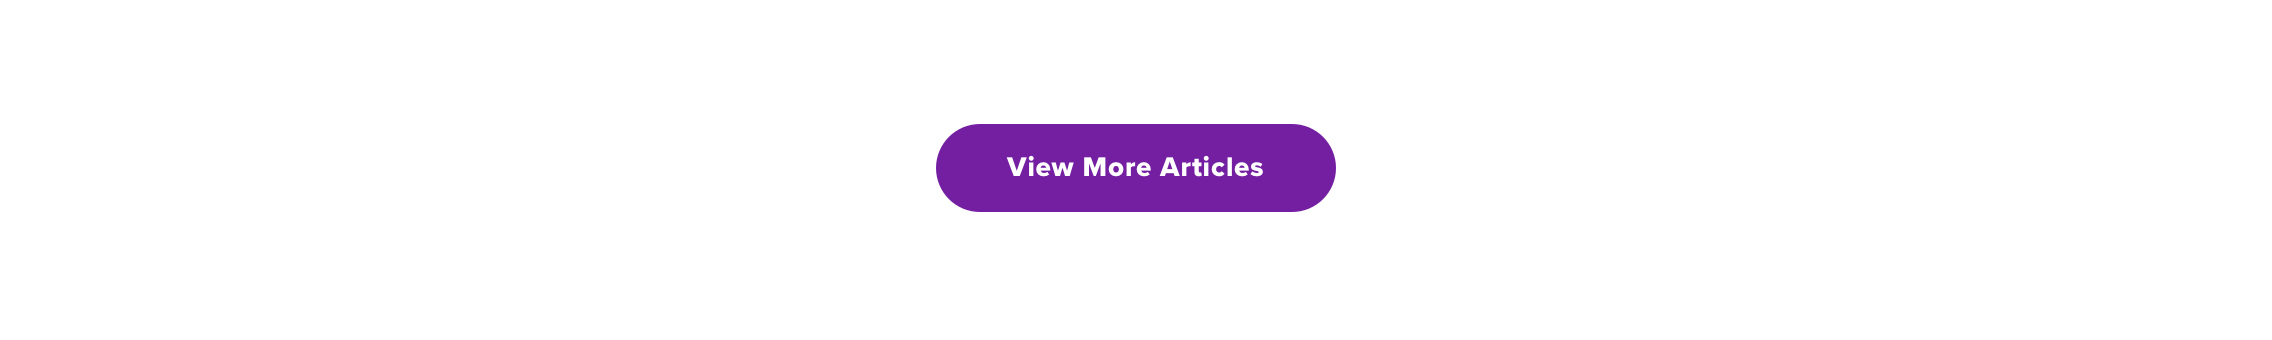 View More Articles